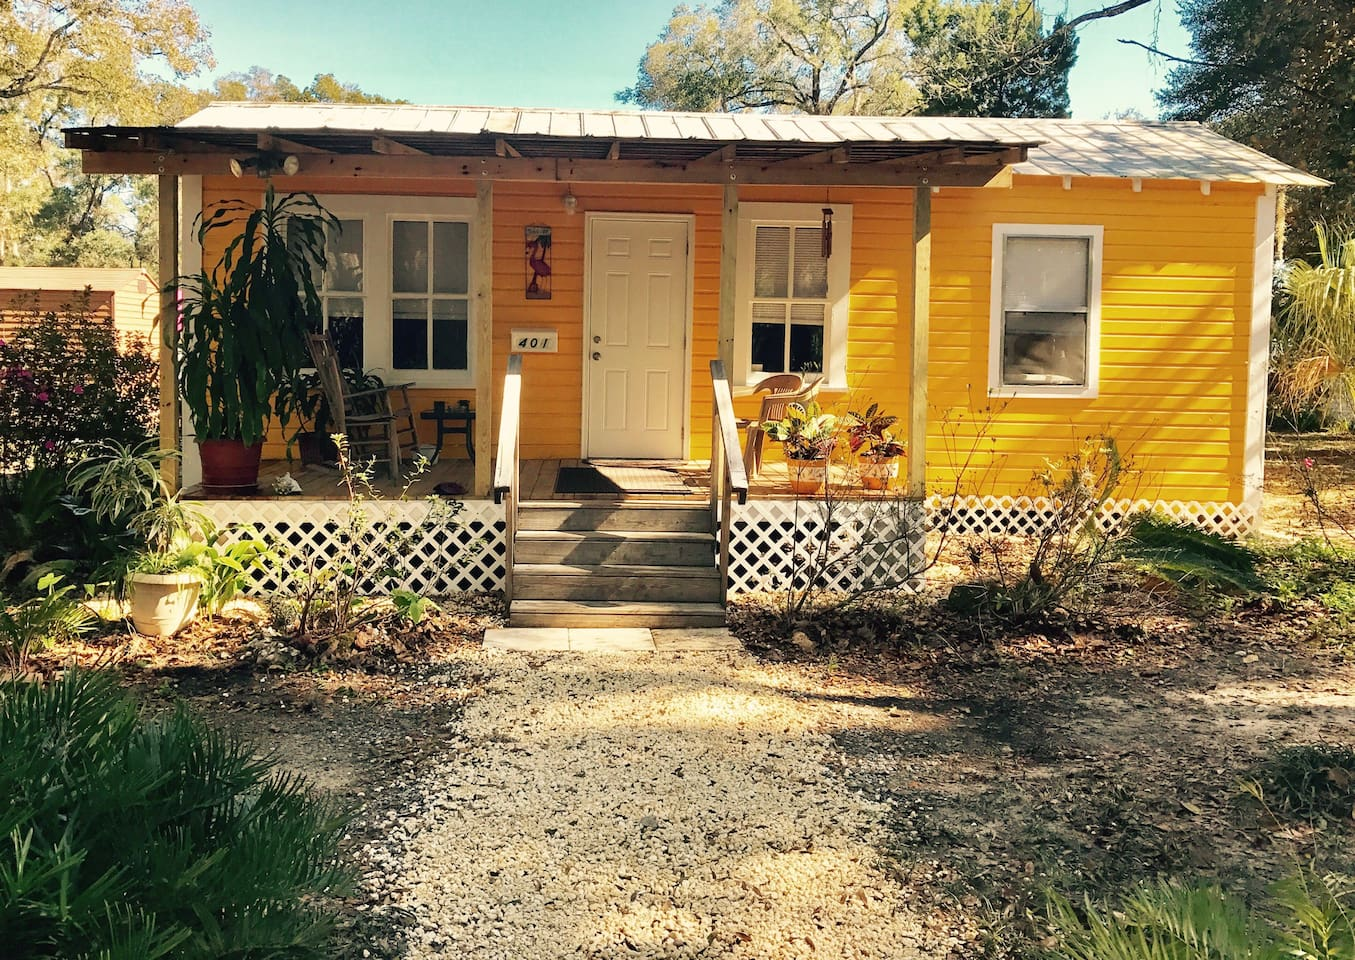 The Little Yellow House - Cottages for Rent in Ocala, Florida ...